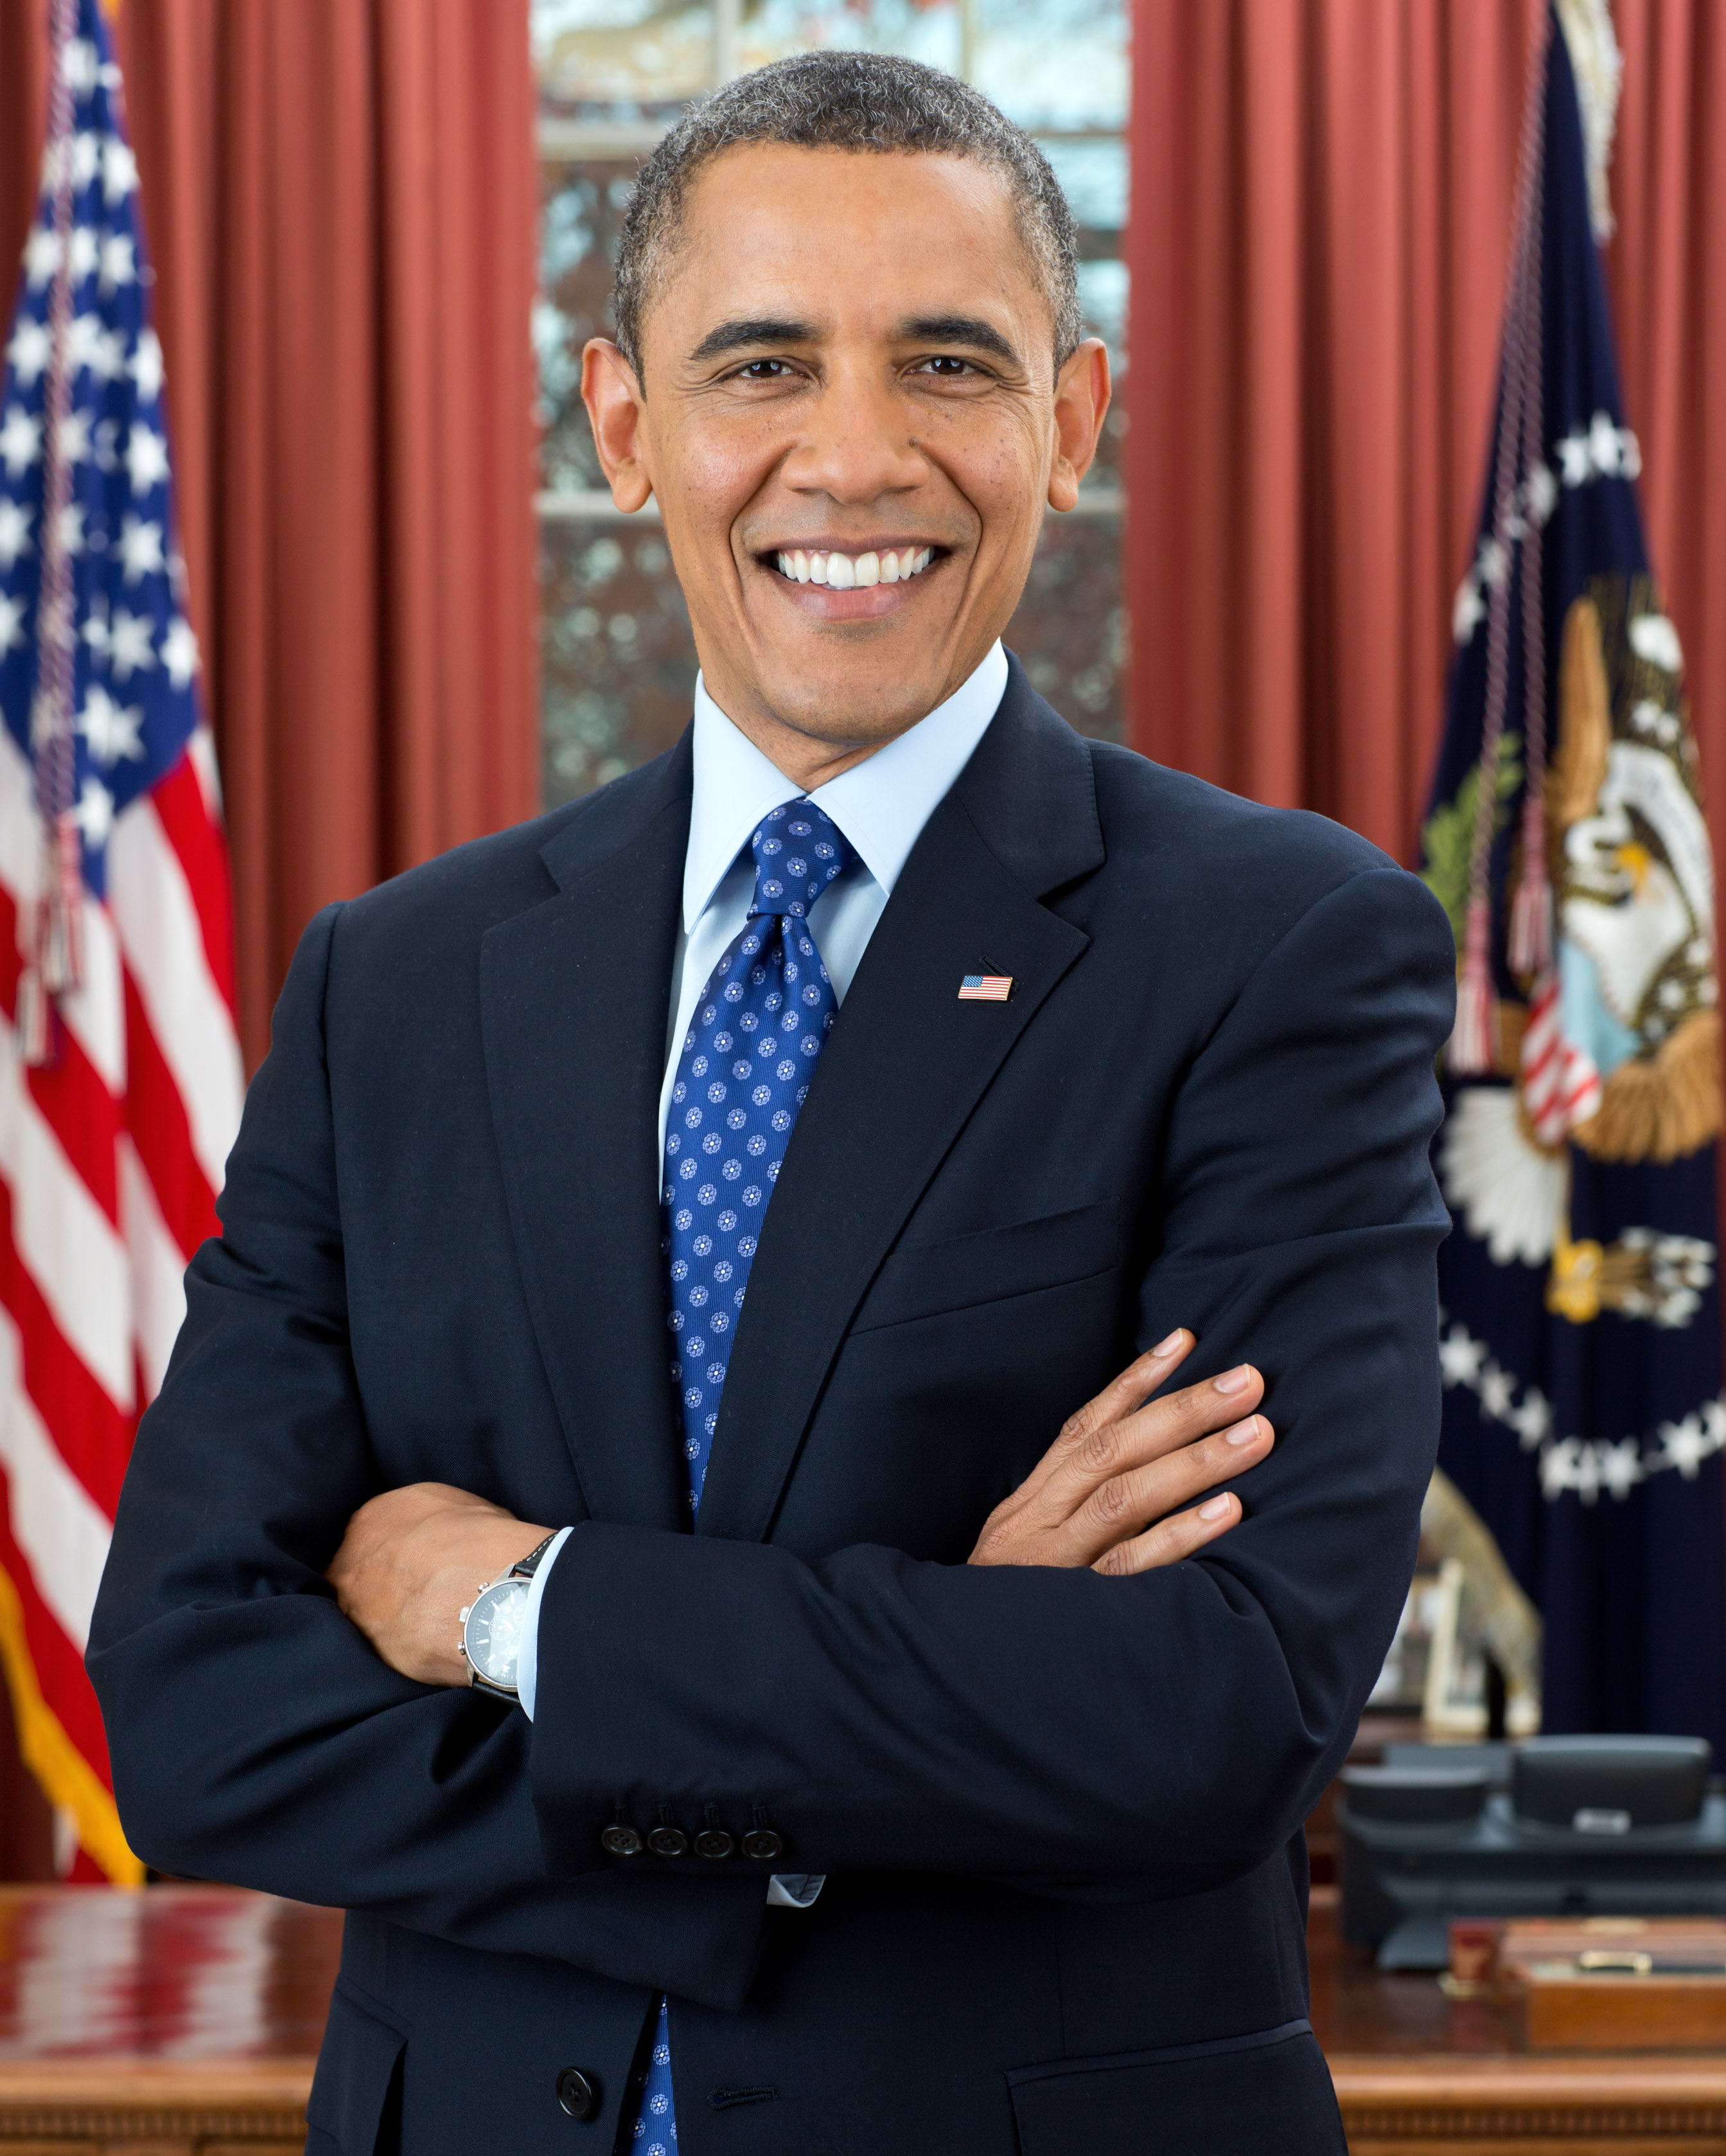 President Barack Obama is photographed during a presidential portrait sitting for an official photo in the Oval Office, December 6, 2012. Official White House photo by Pete Souza.